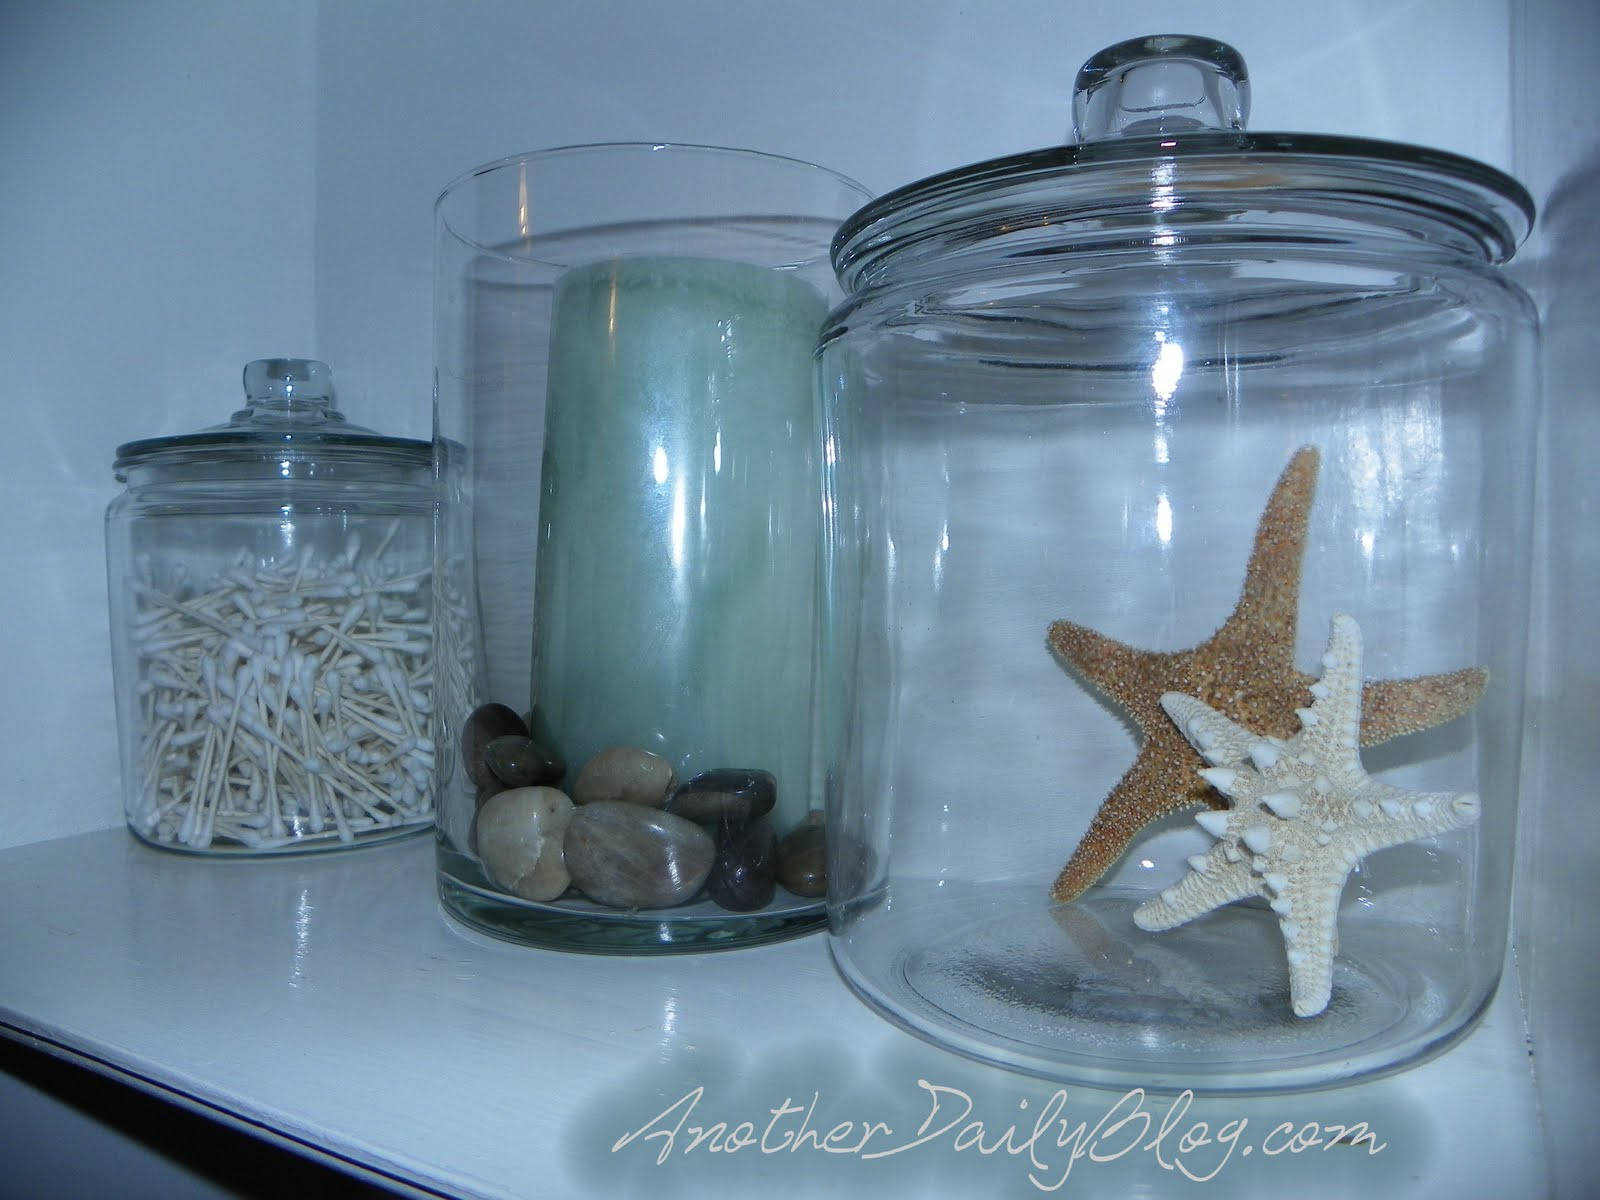 Another Daily Blog: Pottery Barn Inspired Glass Bathroom Canisters ...